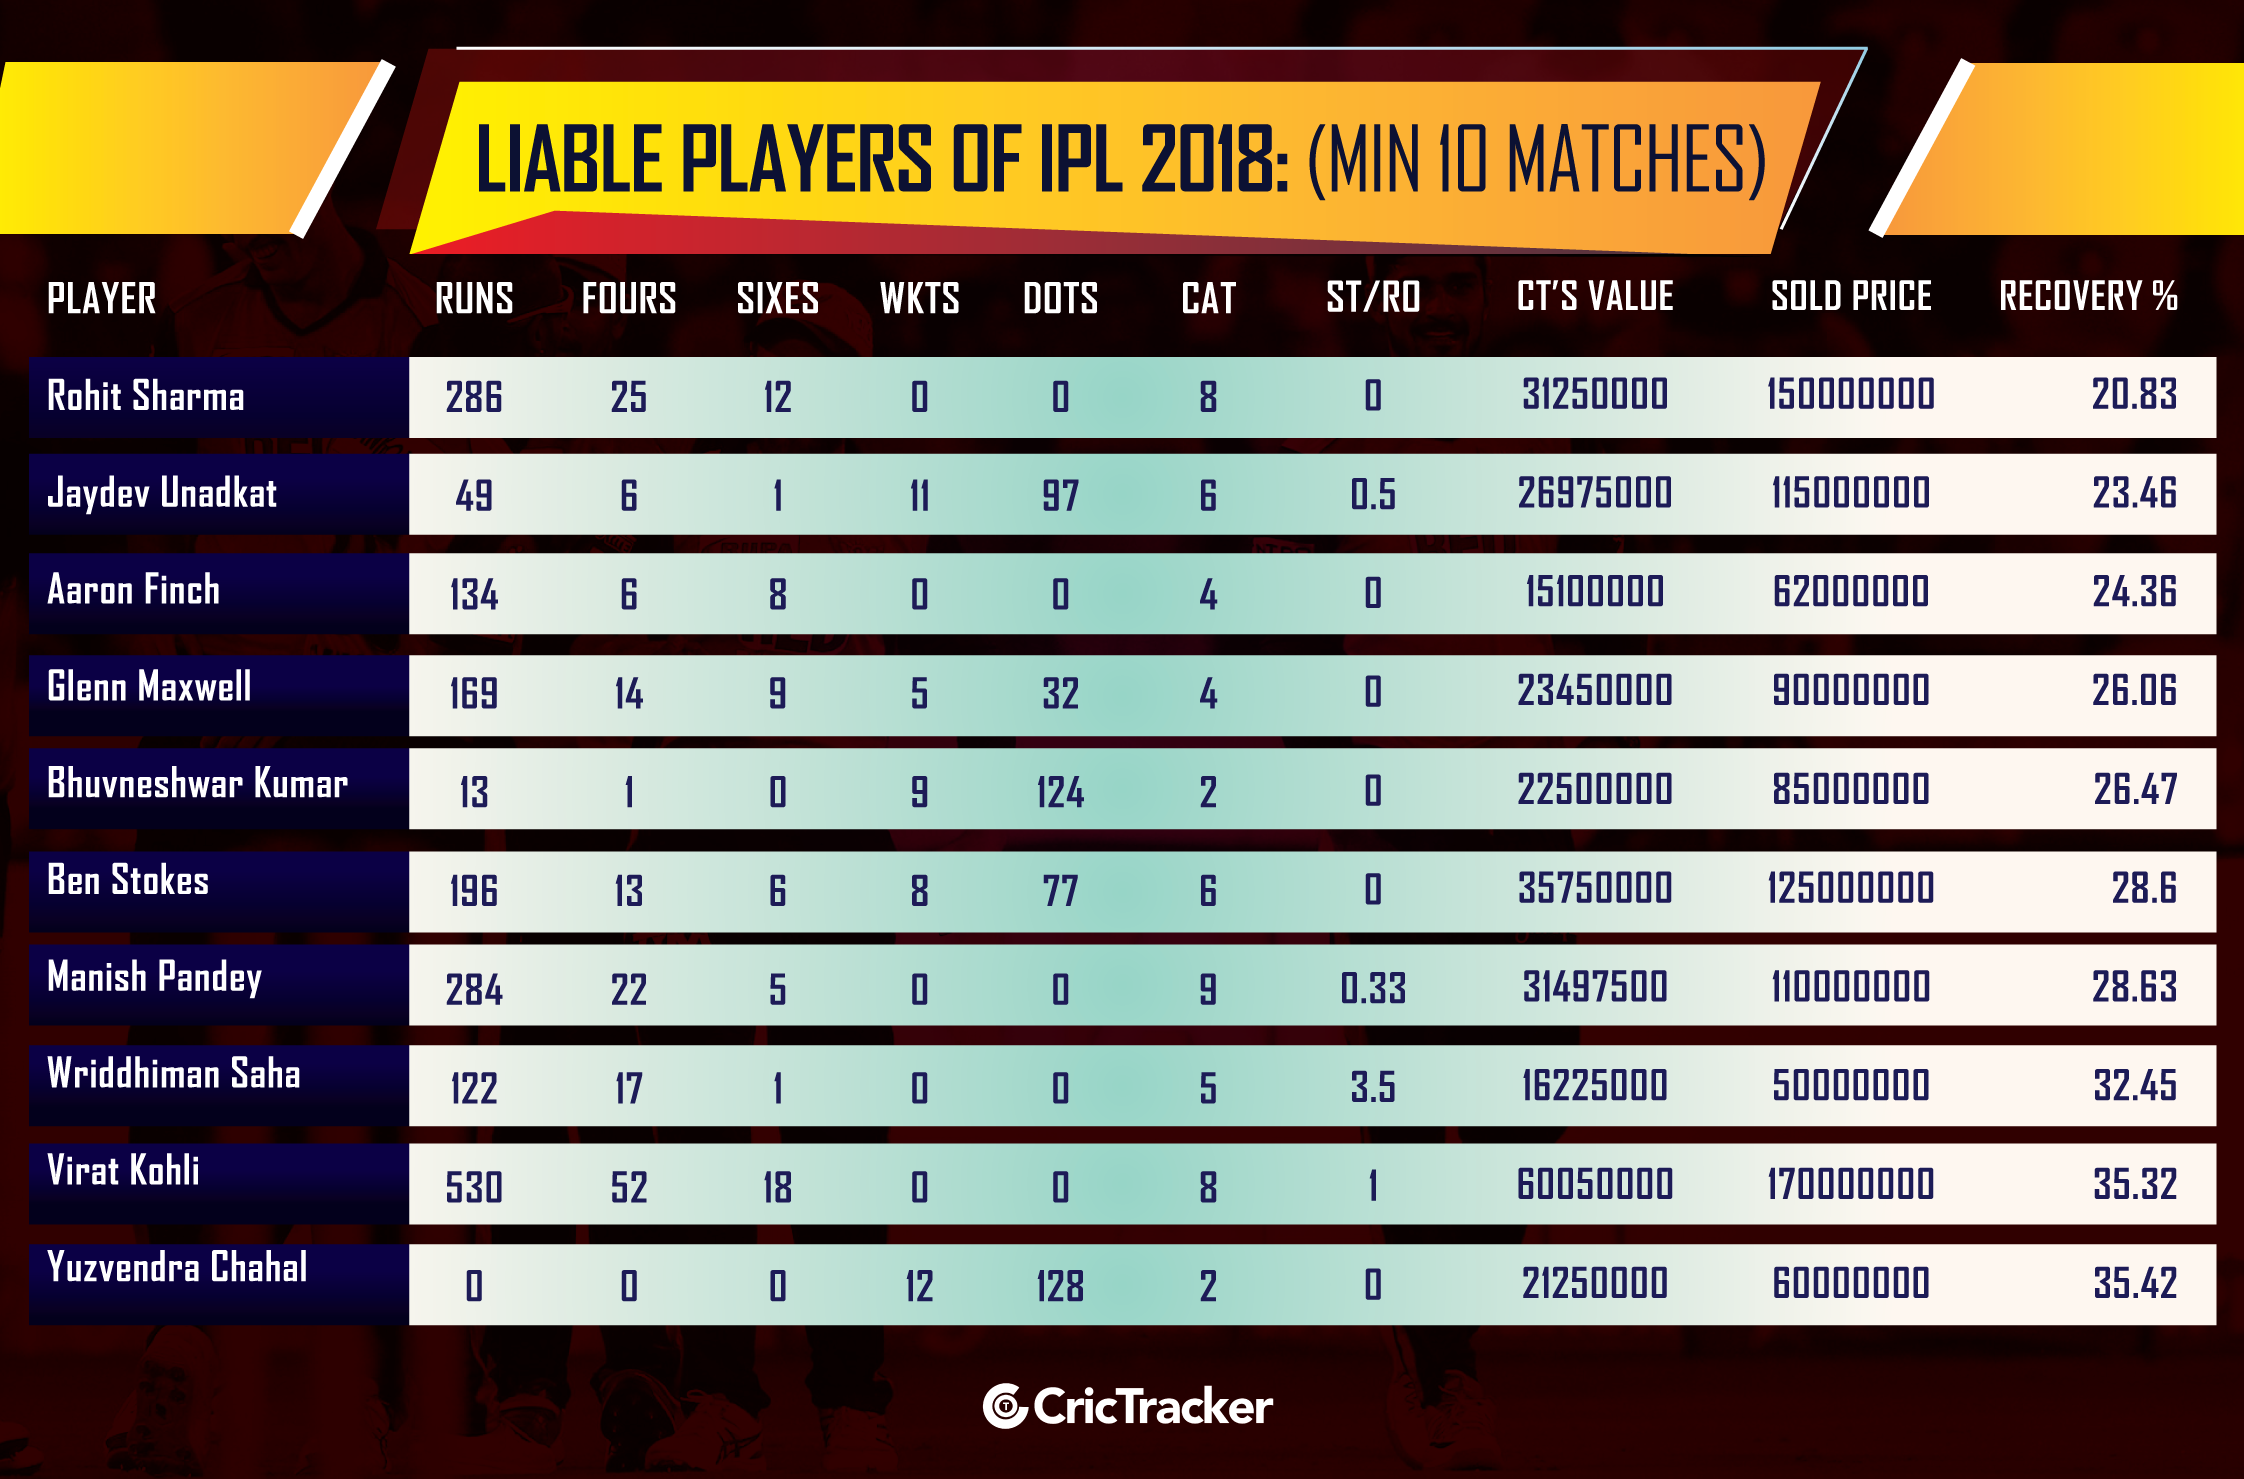 Liable-Players-of-IPL-2018--(Min-10-matches-played)